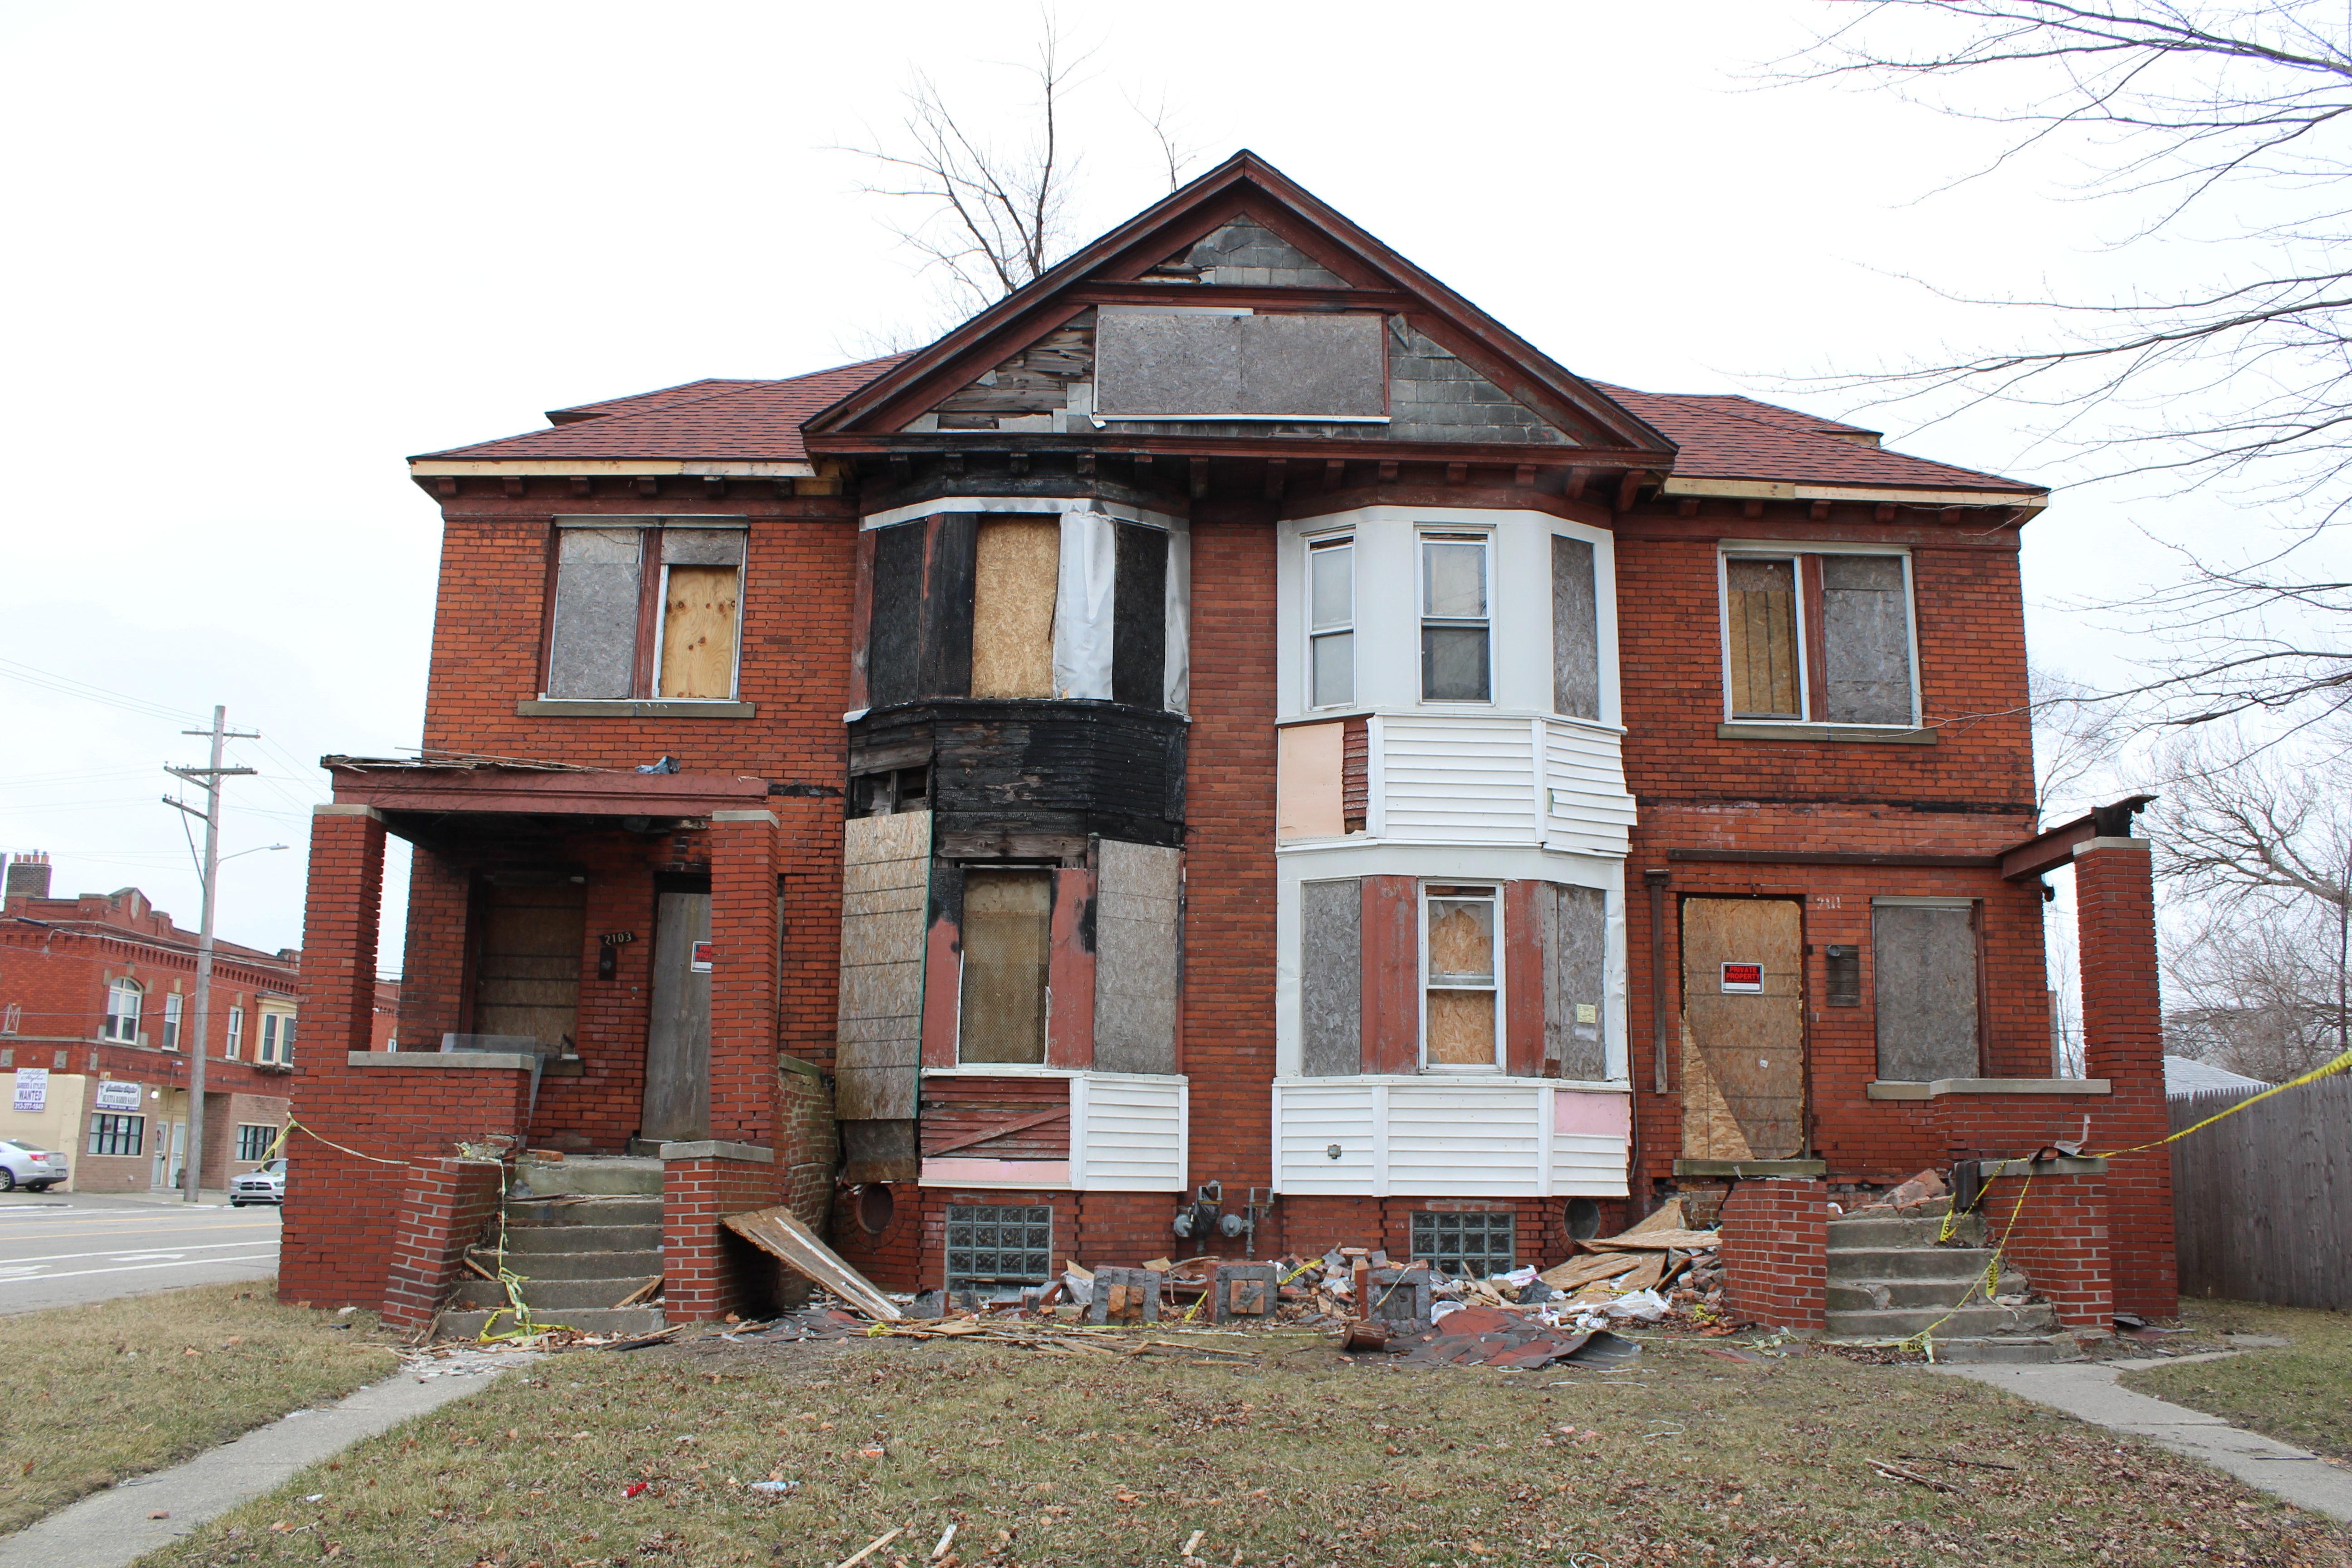 Doubt Looms Large Over Detroit Demolitions, as City Council Weighs Blight Bond Proposal - WDET